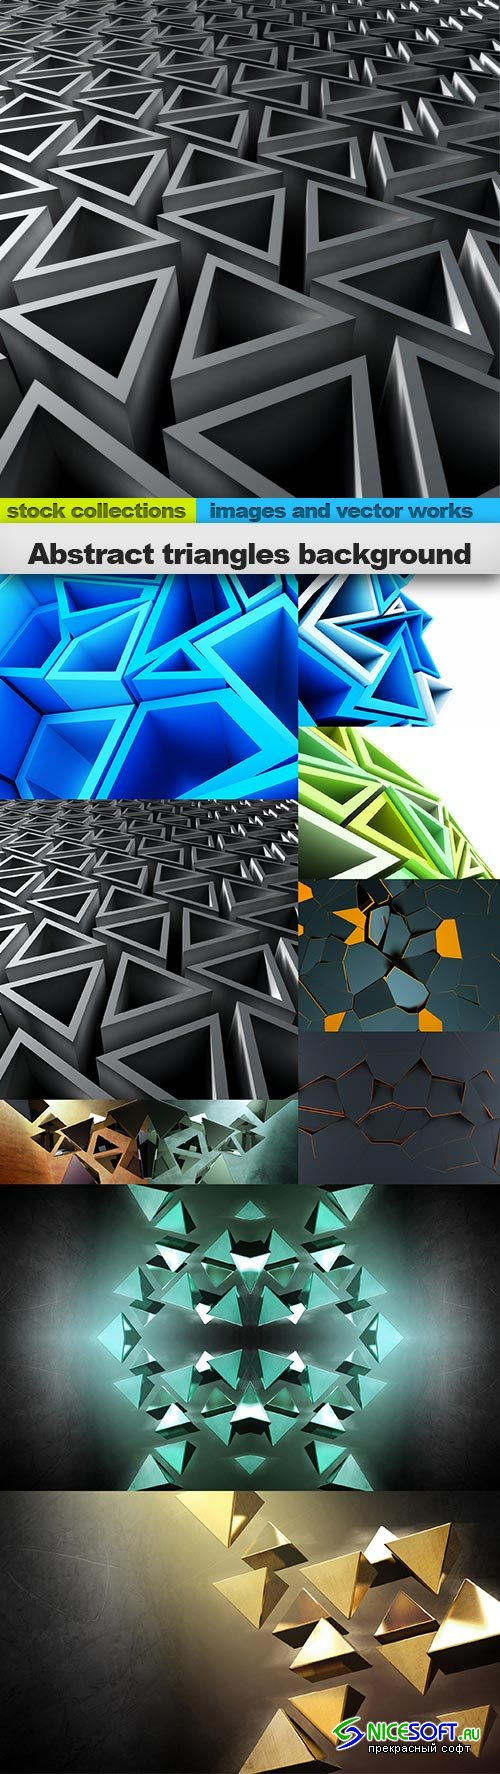 Abstract triangles background, 10 x UHQ JPEG